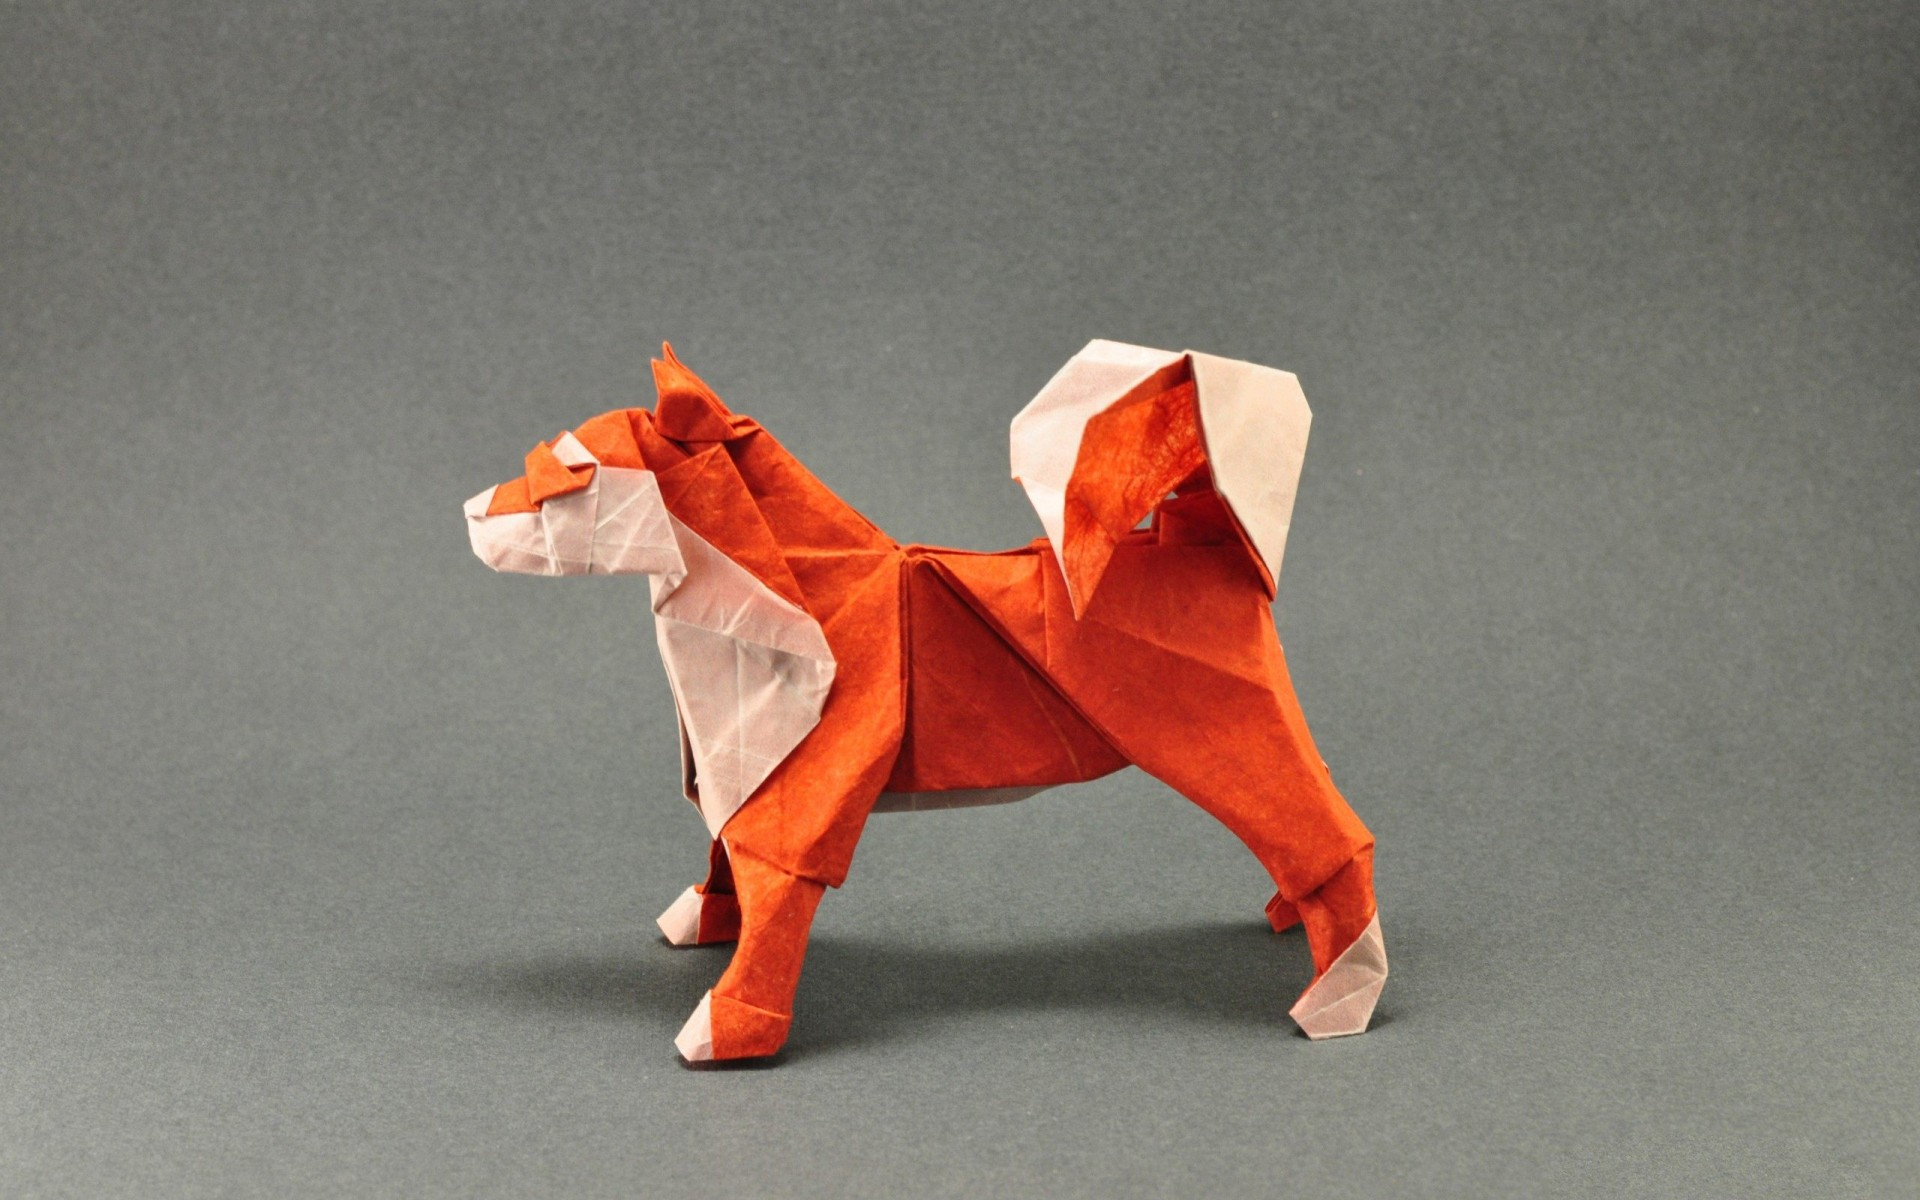 Origami Dog wallpapers | Origami Dog stock photos - photo#23